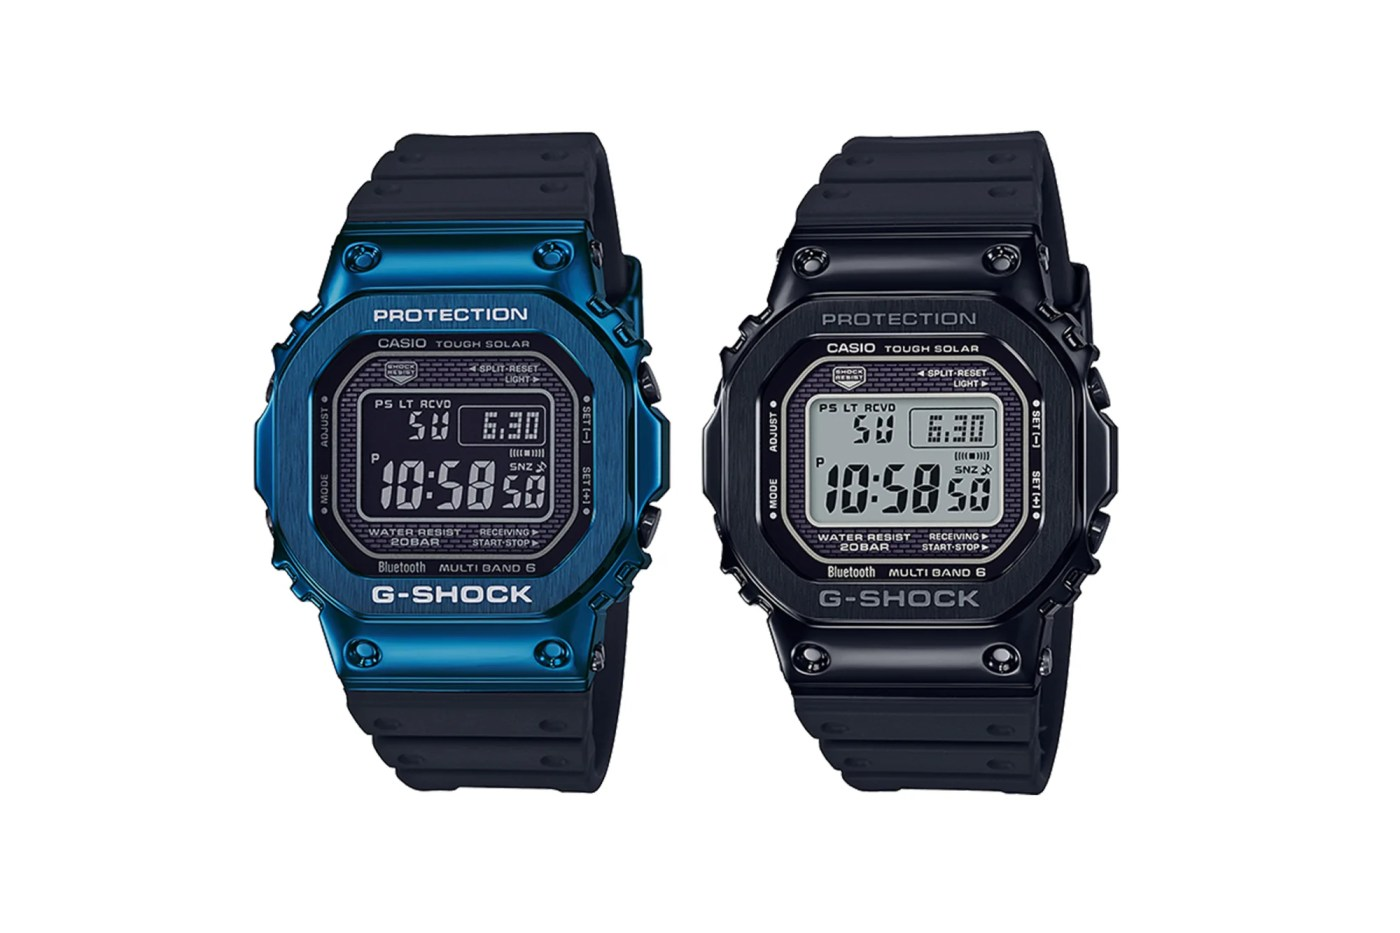 Casio Full Metal 5000 blue-and black rubber strap models